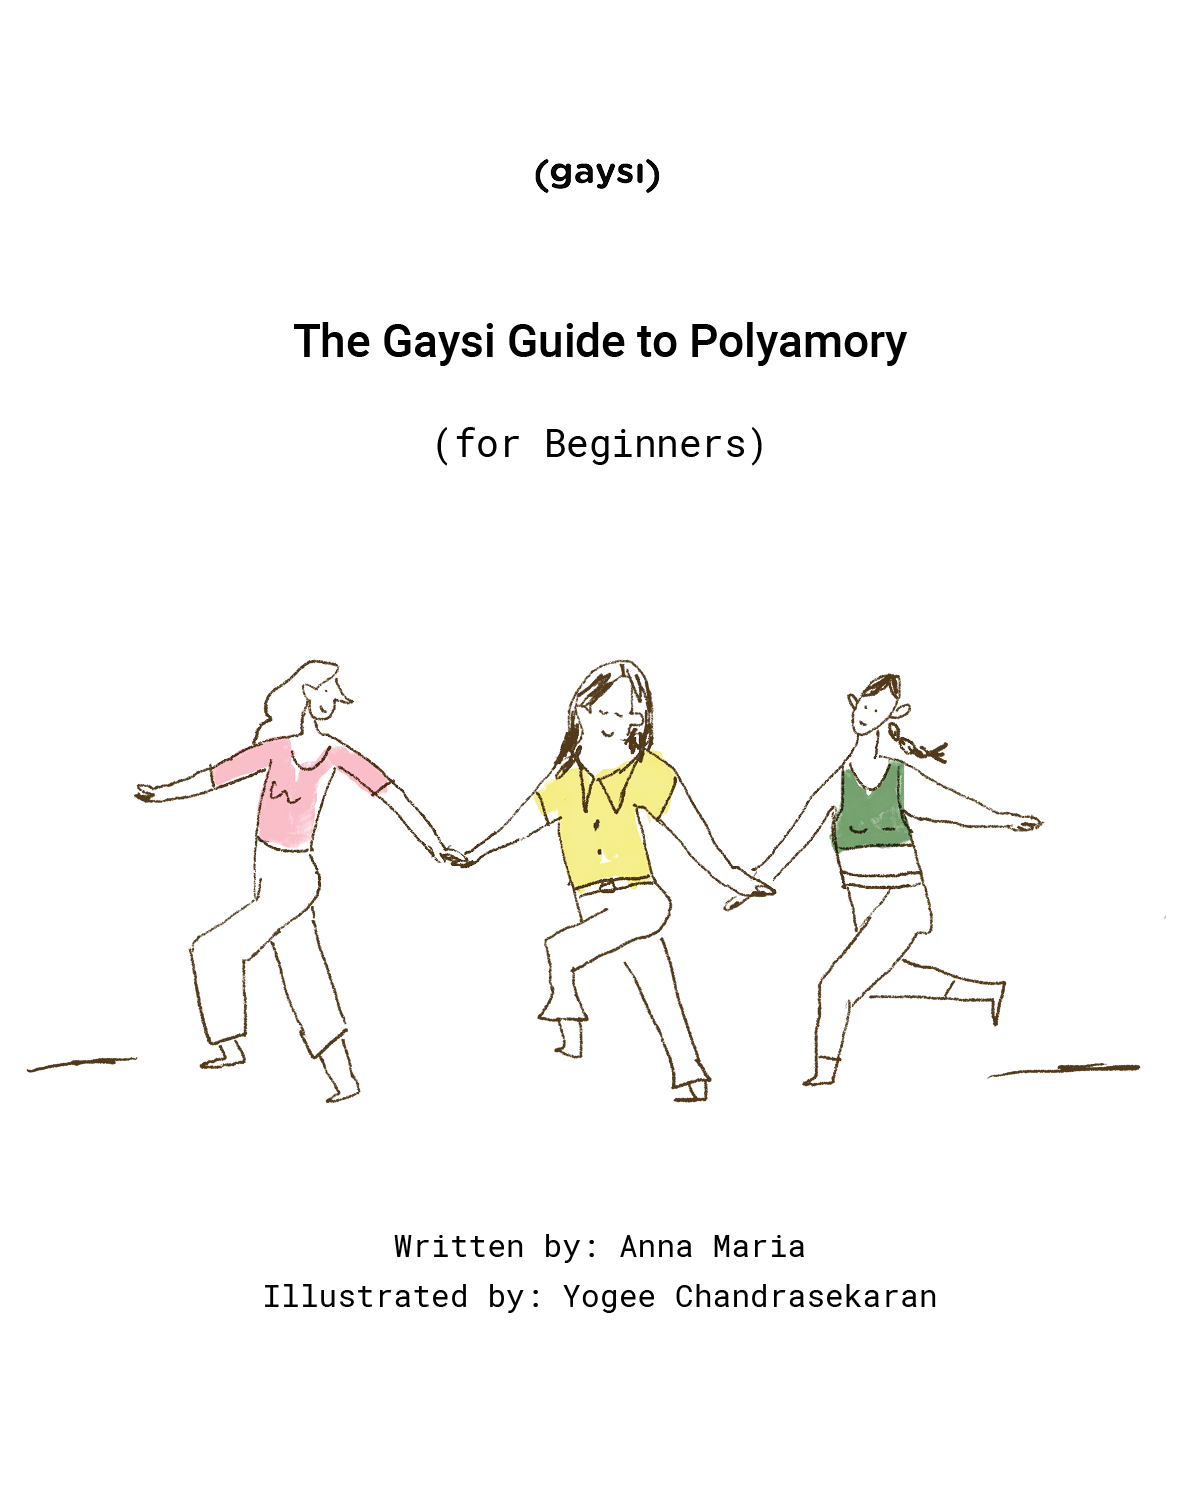 The Gaysi Guide To Polyamory (For Beginners)